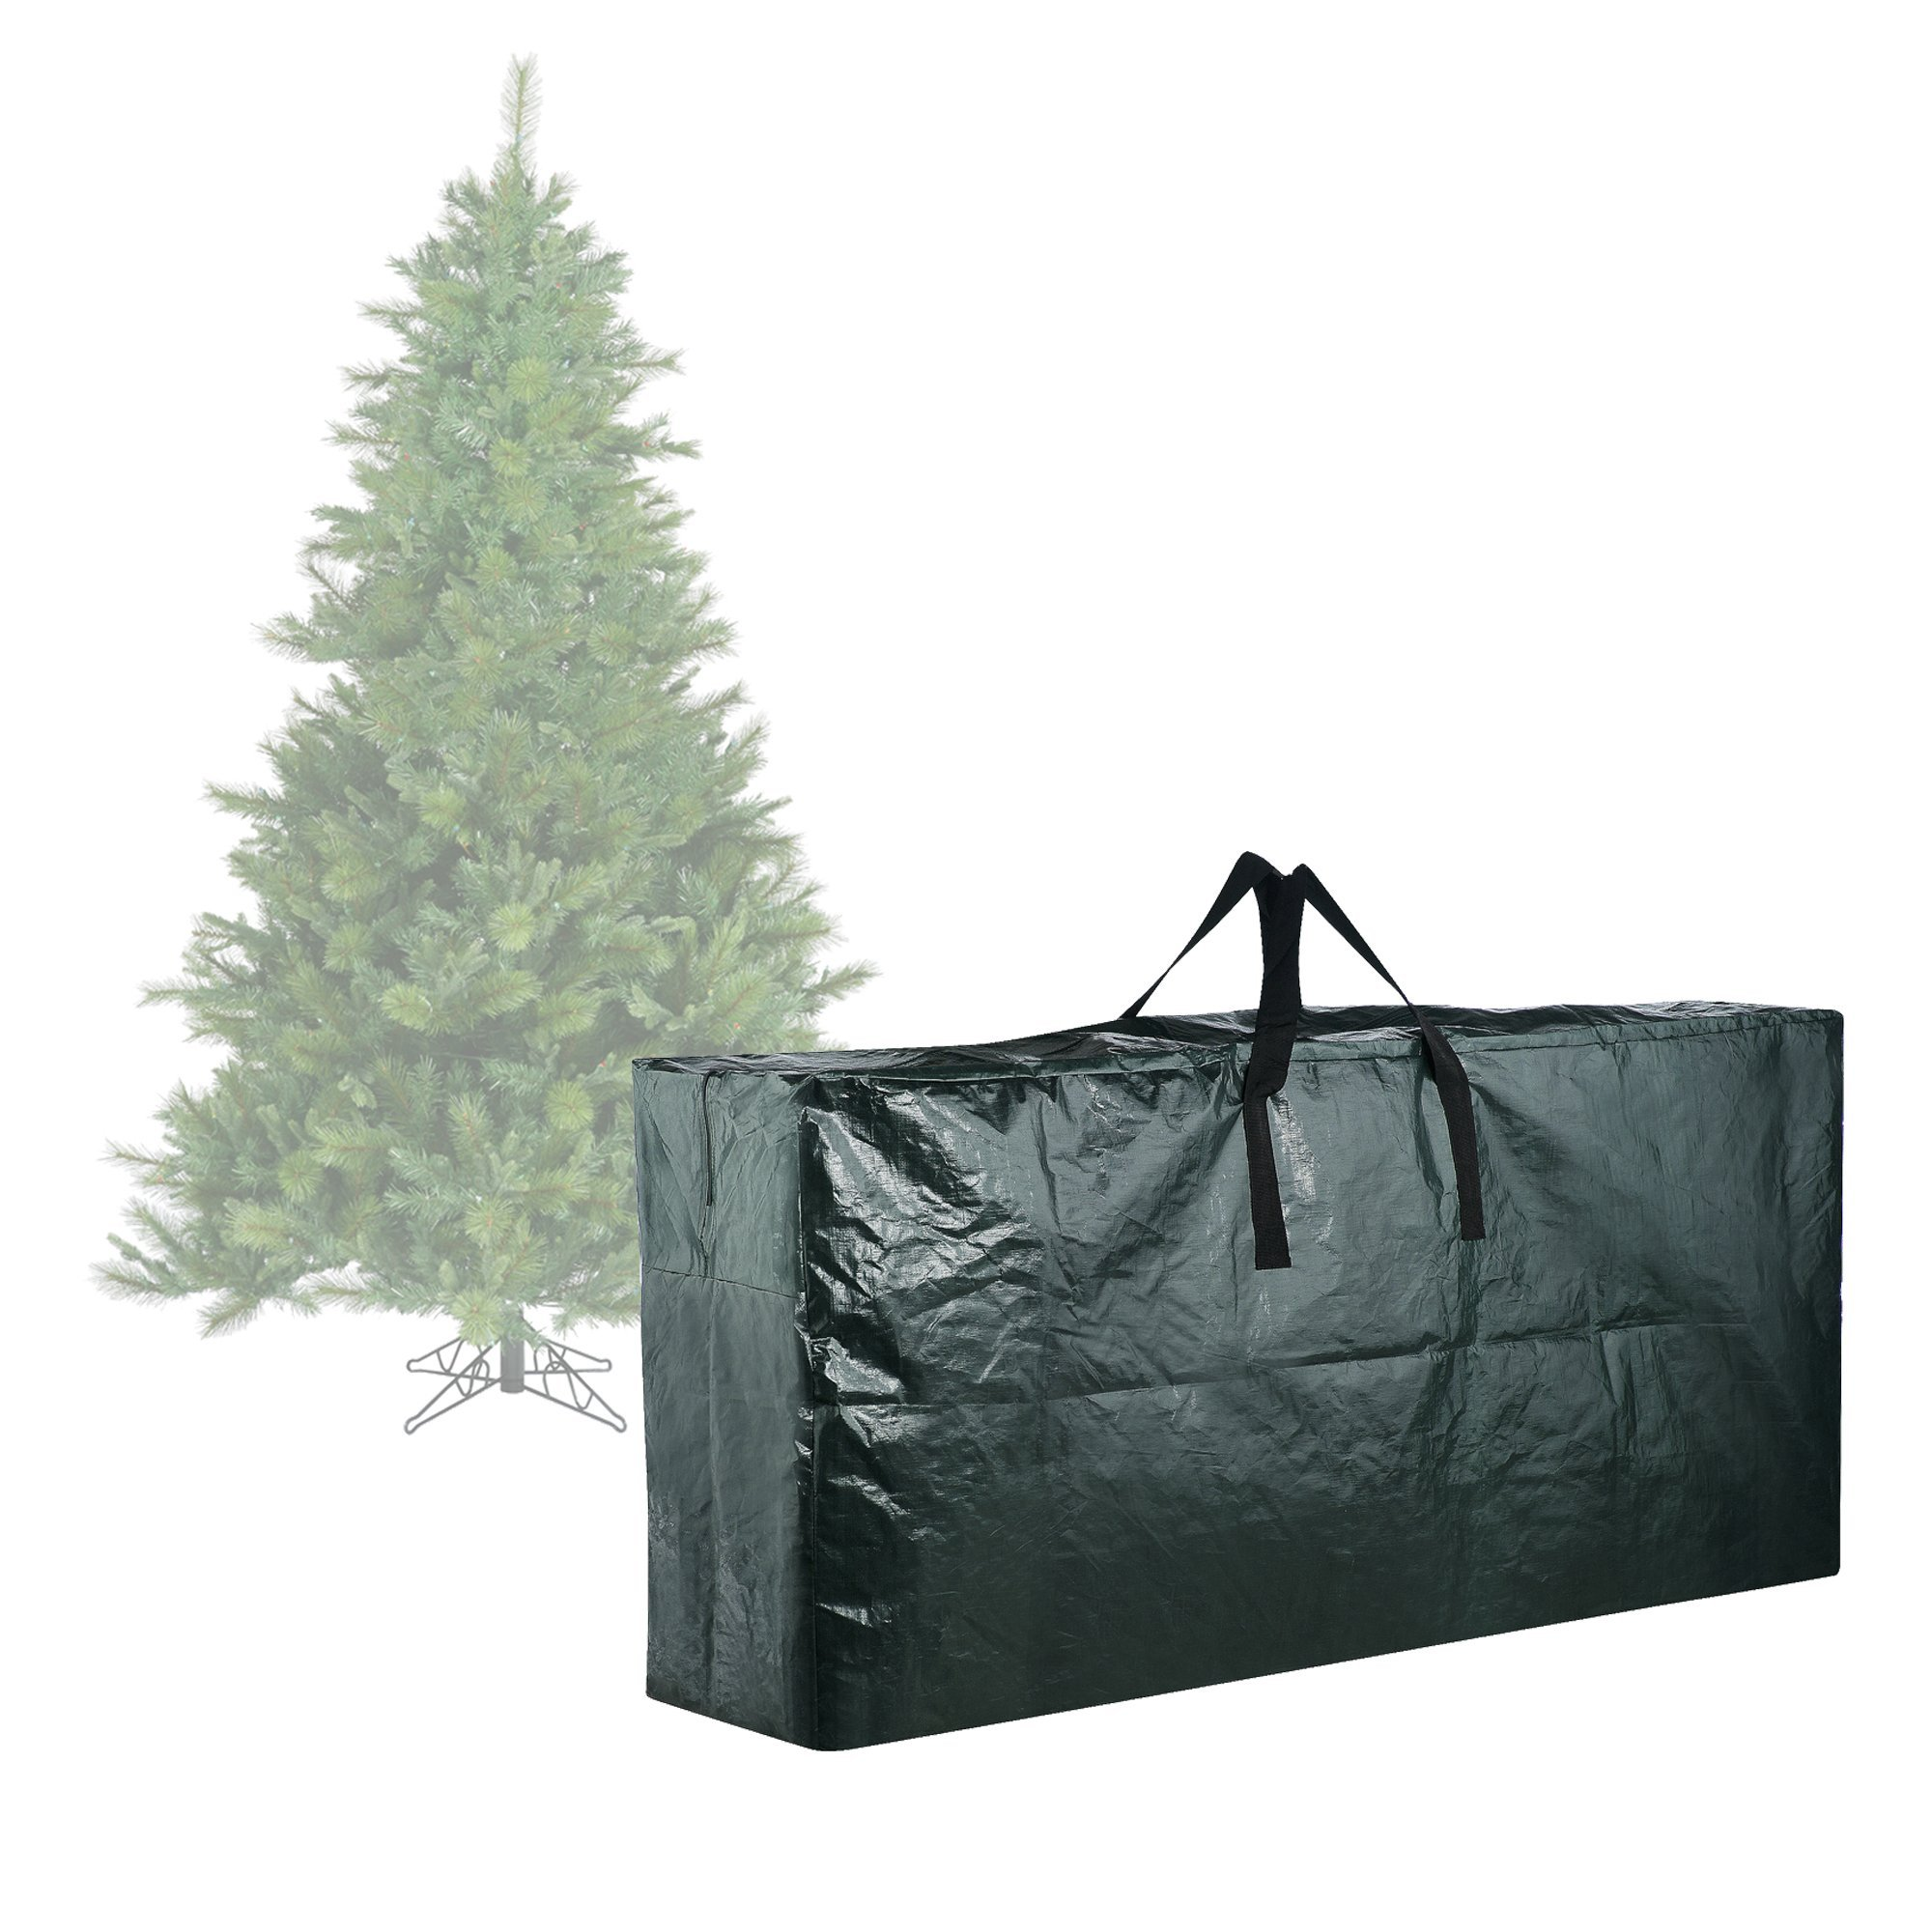 Elf Stor Premium Green Christmas Tree Bag Holiday Extra Large for up to 9' Tree Storage by Elf Stor (Image #3)